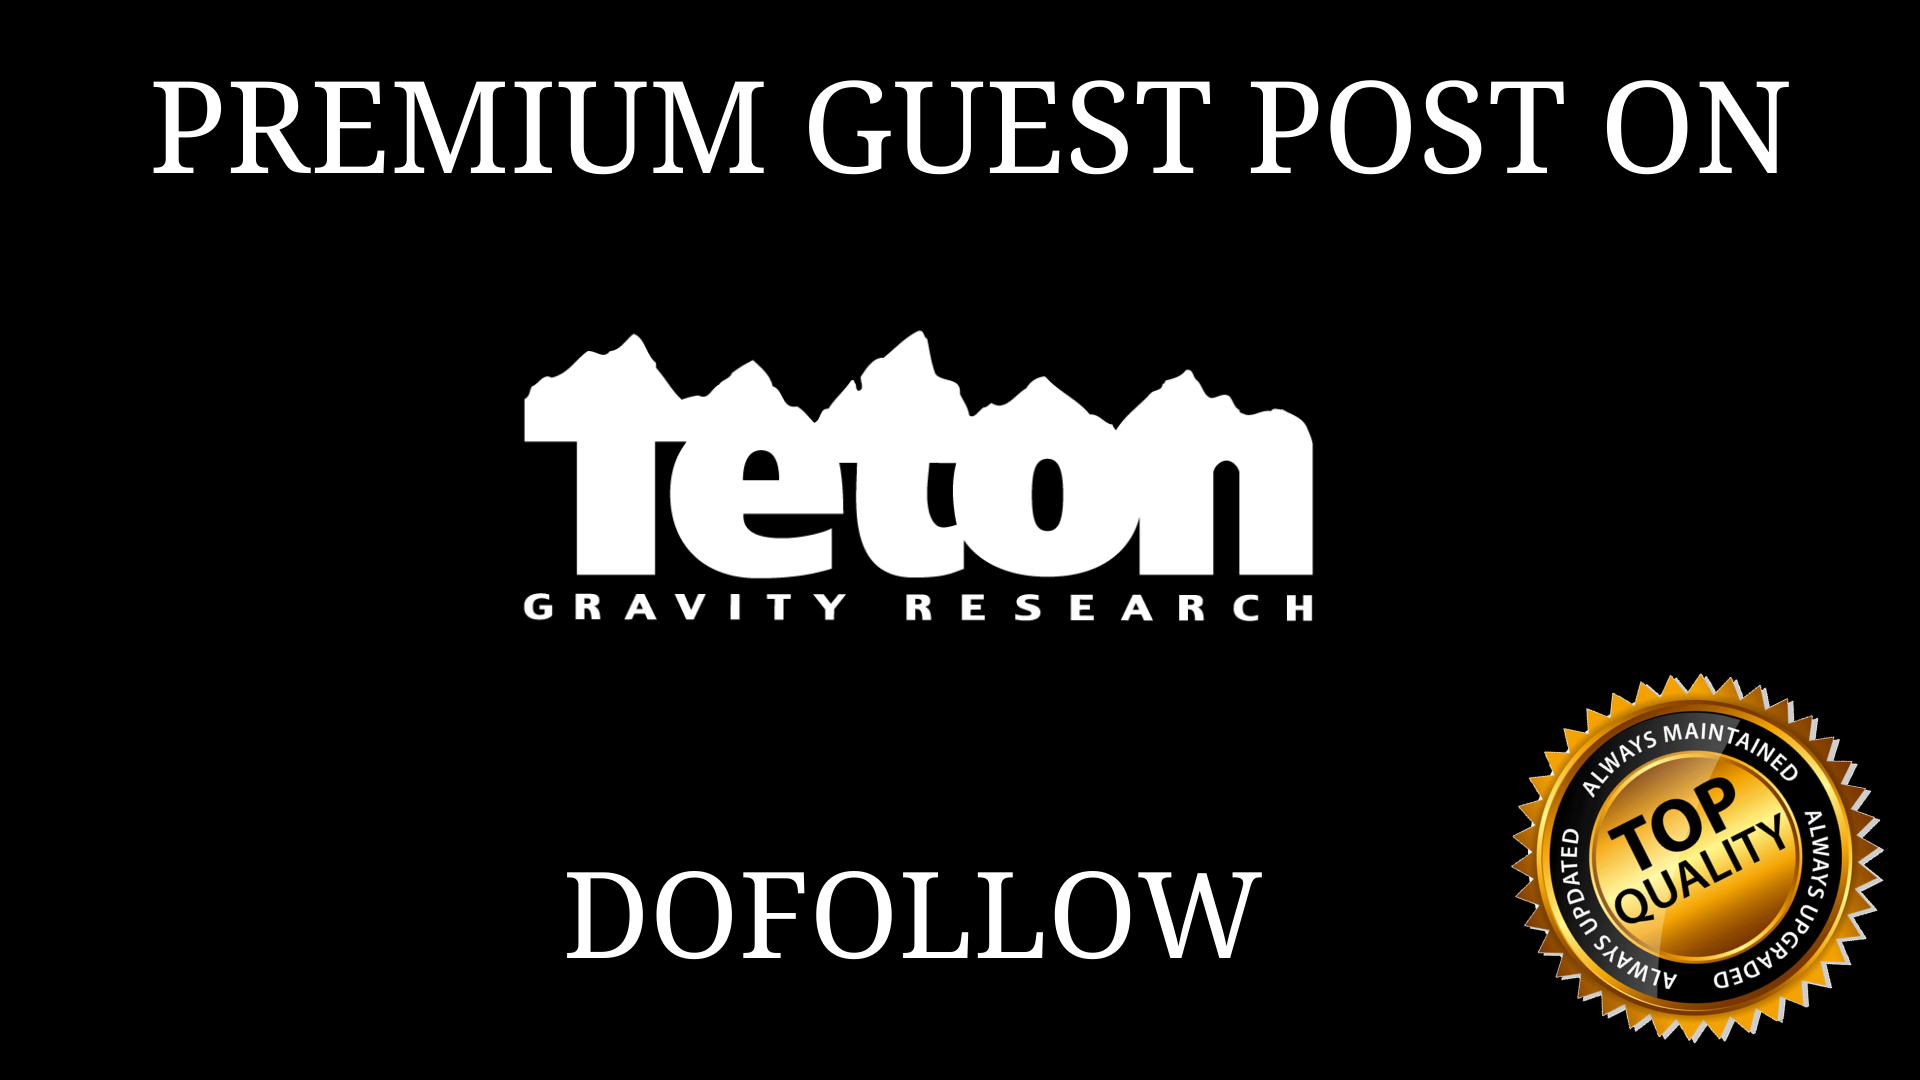 PUBLISH GUEST POST ON Tetongravity.com